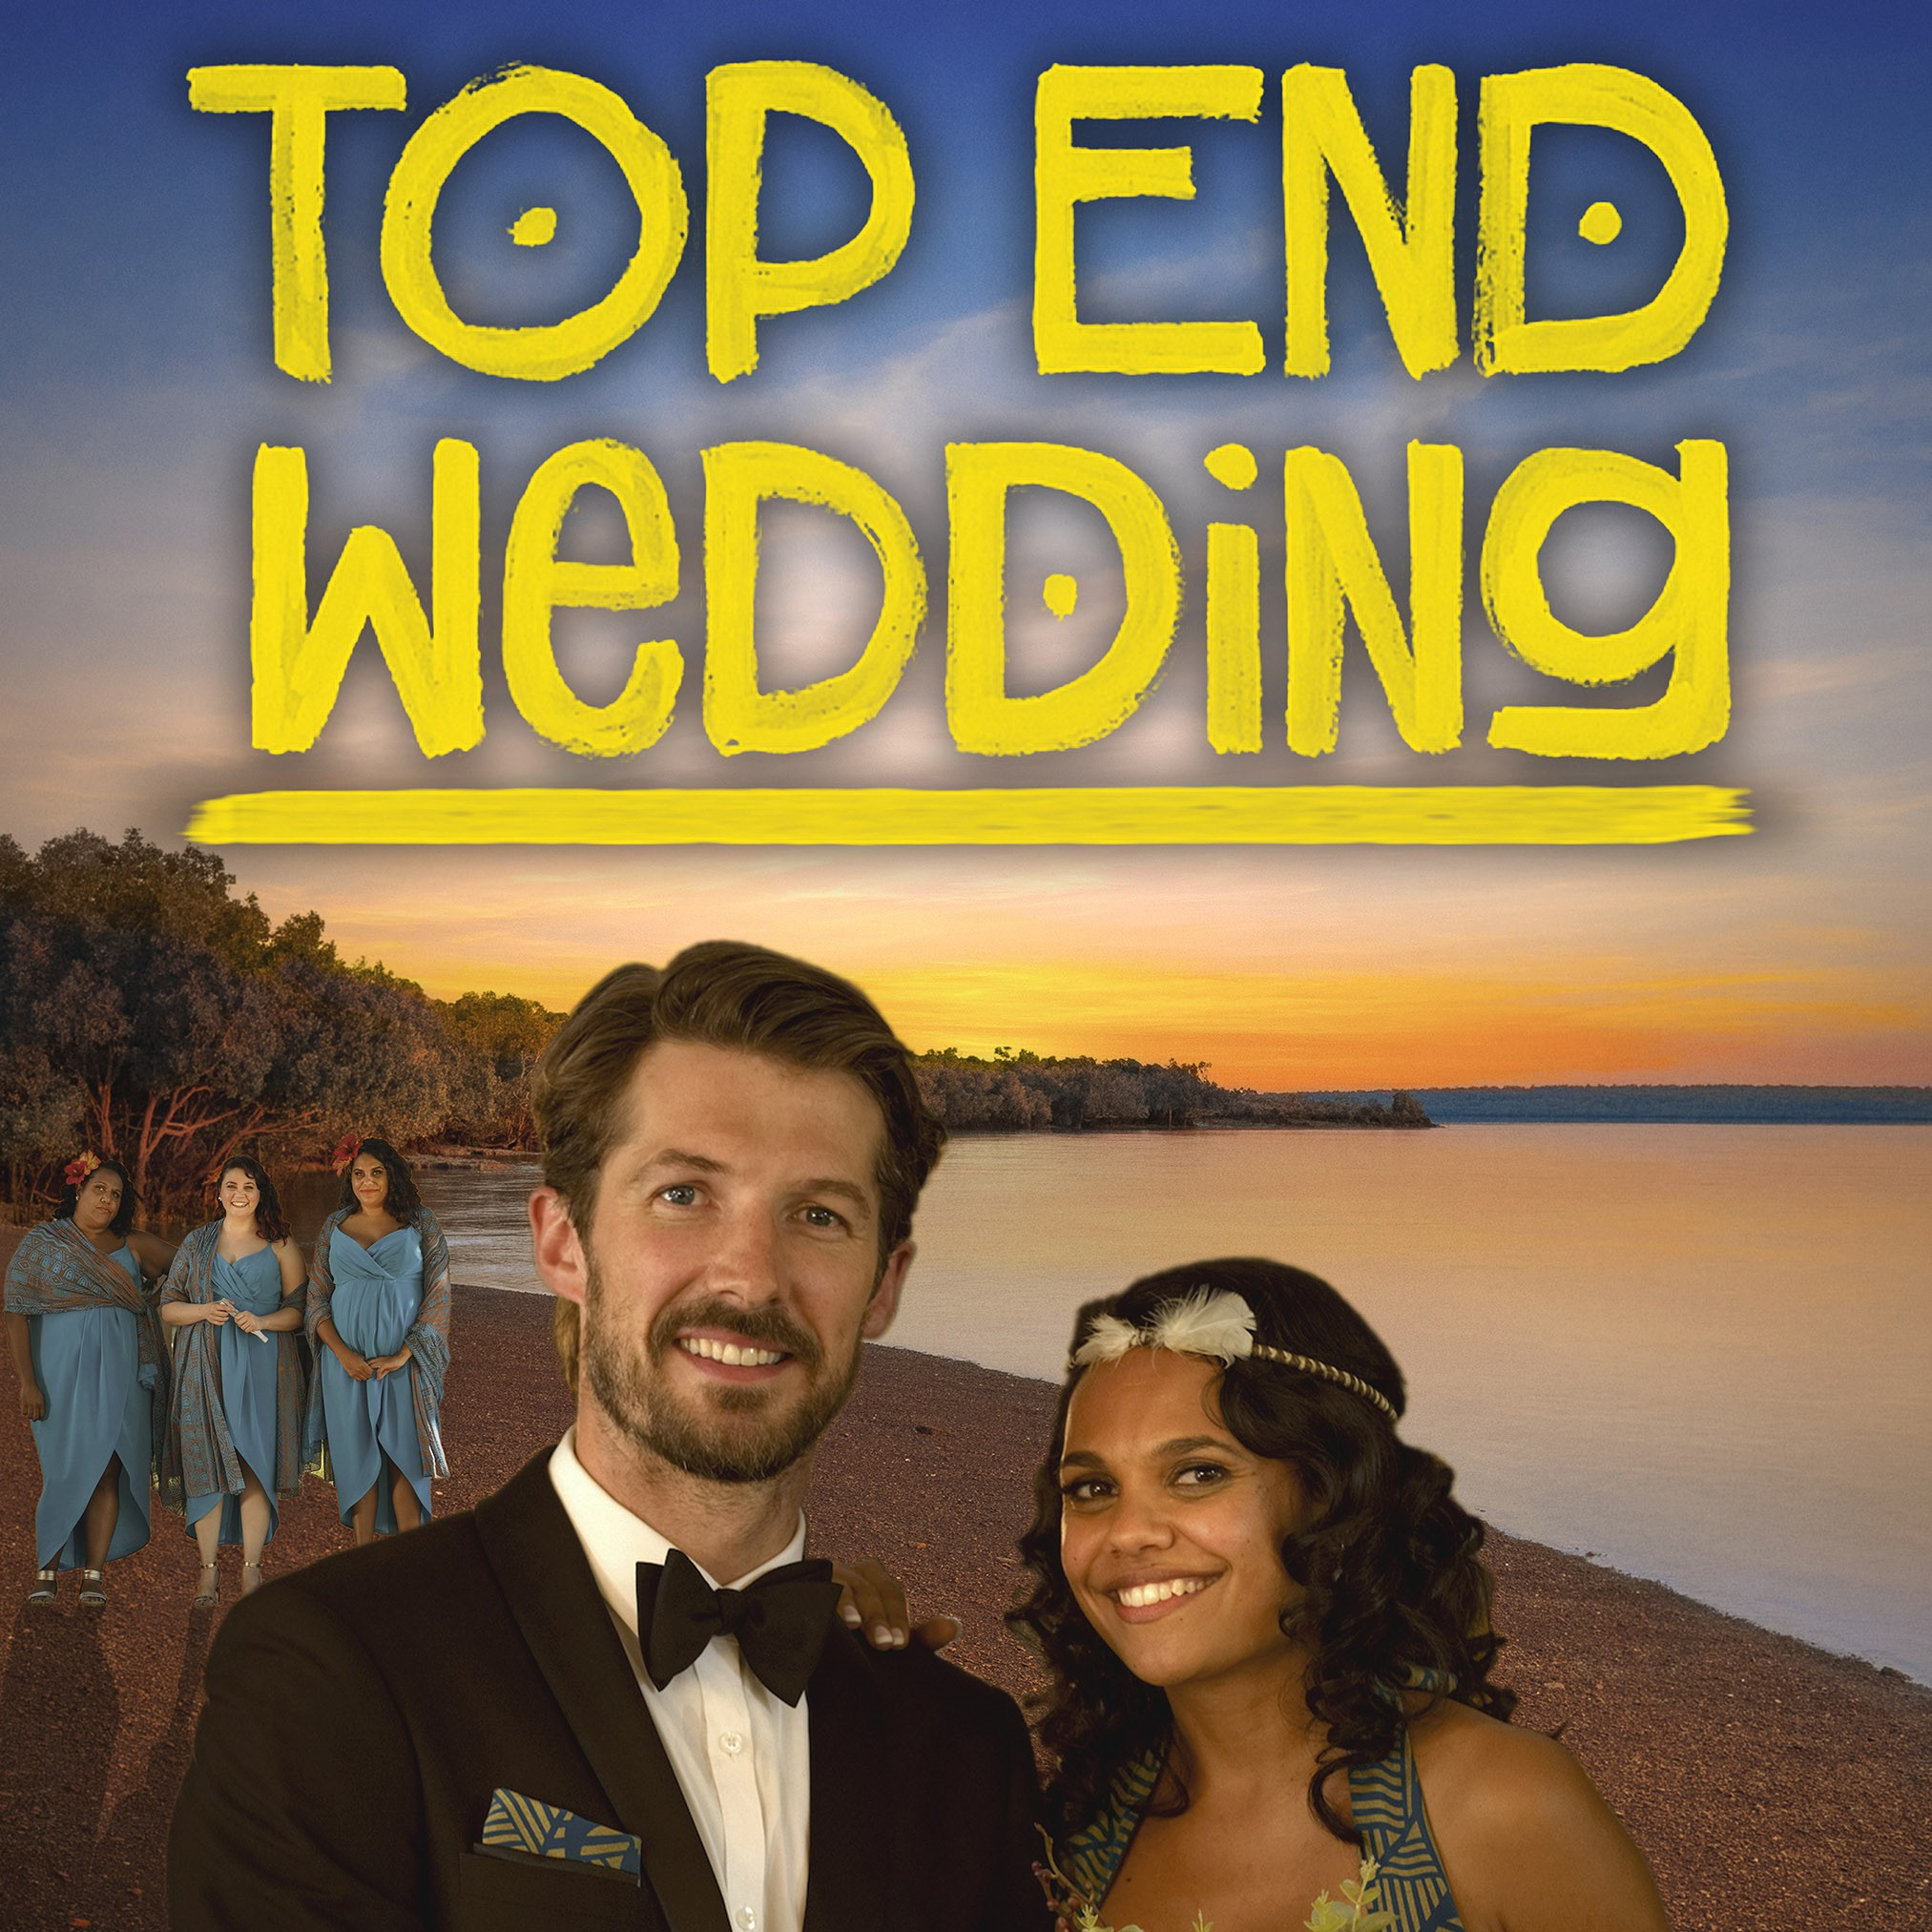 Man and woman in formalwear on a beach, captioned 'Top End Wedding'